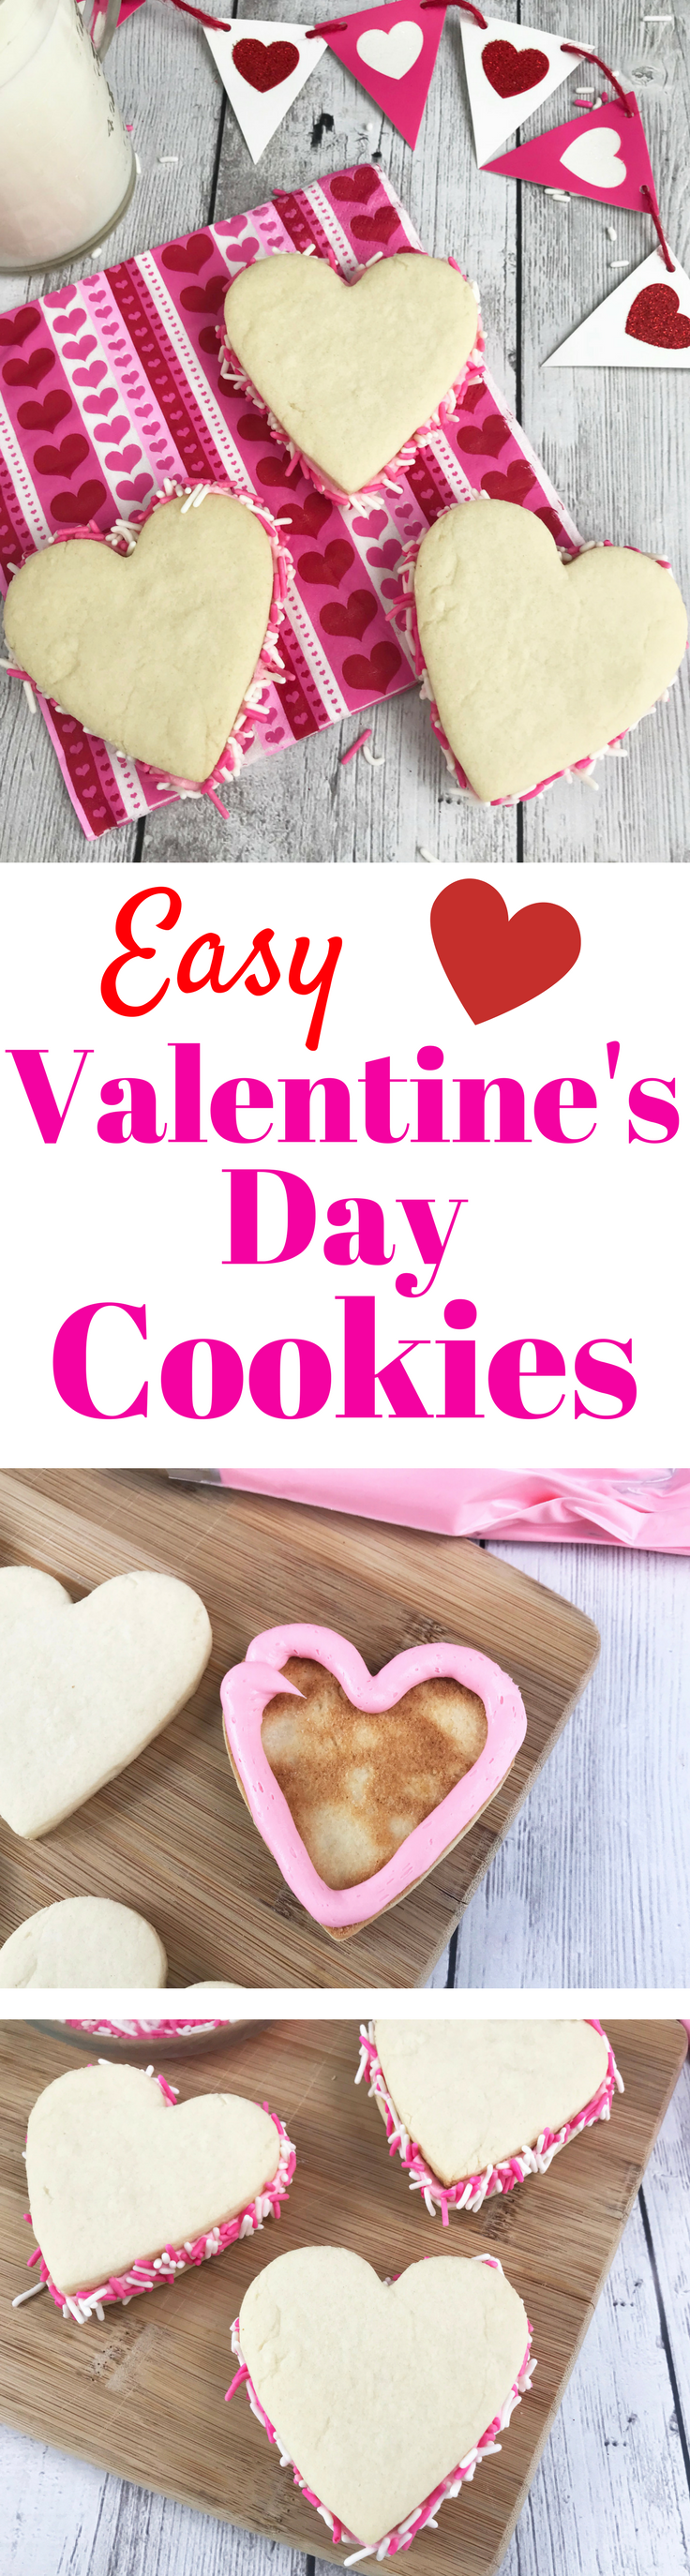 Valentine's Day Sandwich Cookies, Valentine's Day Cookies, Easy Treats for Valentine's Day, Heart Shaped Cookies